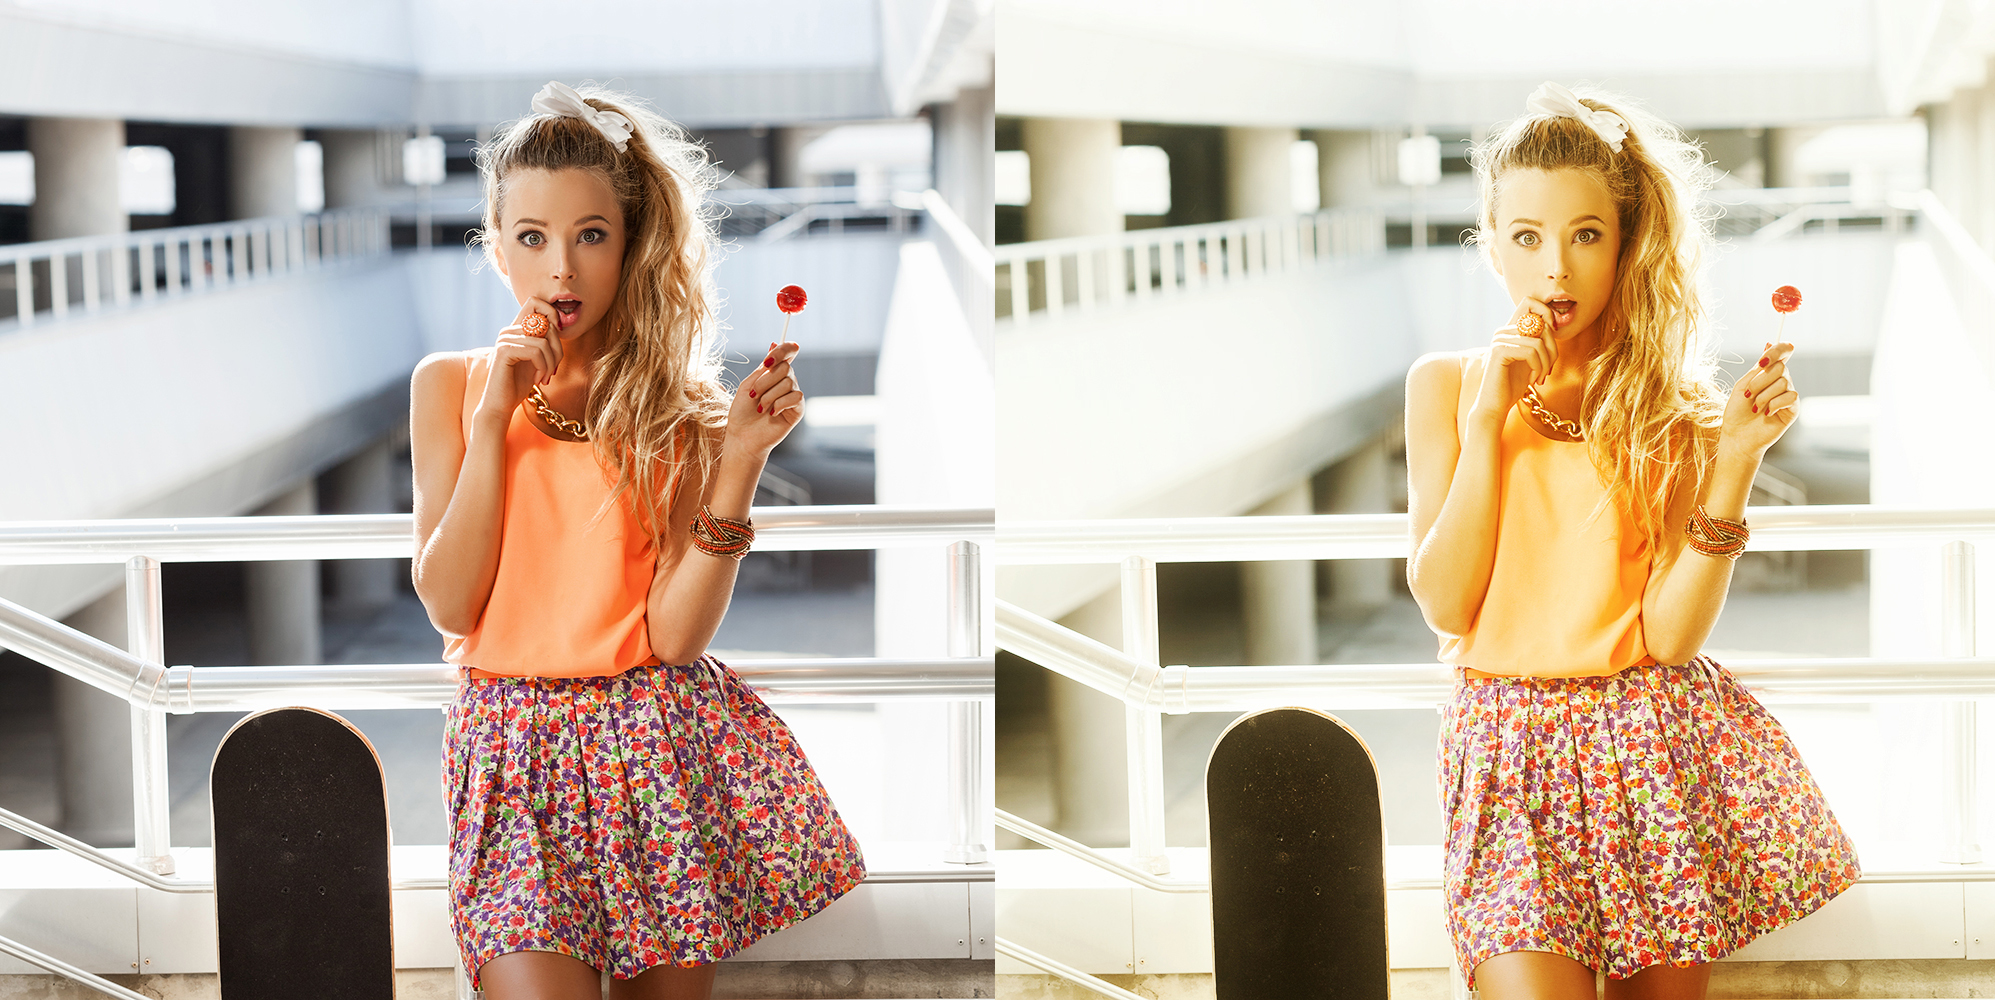 174 Fashion Model Photoshop Actions Collection (Action for photoshop CS5,CS6,CC) example image 2